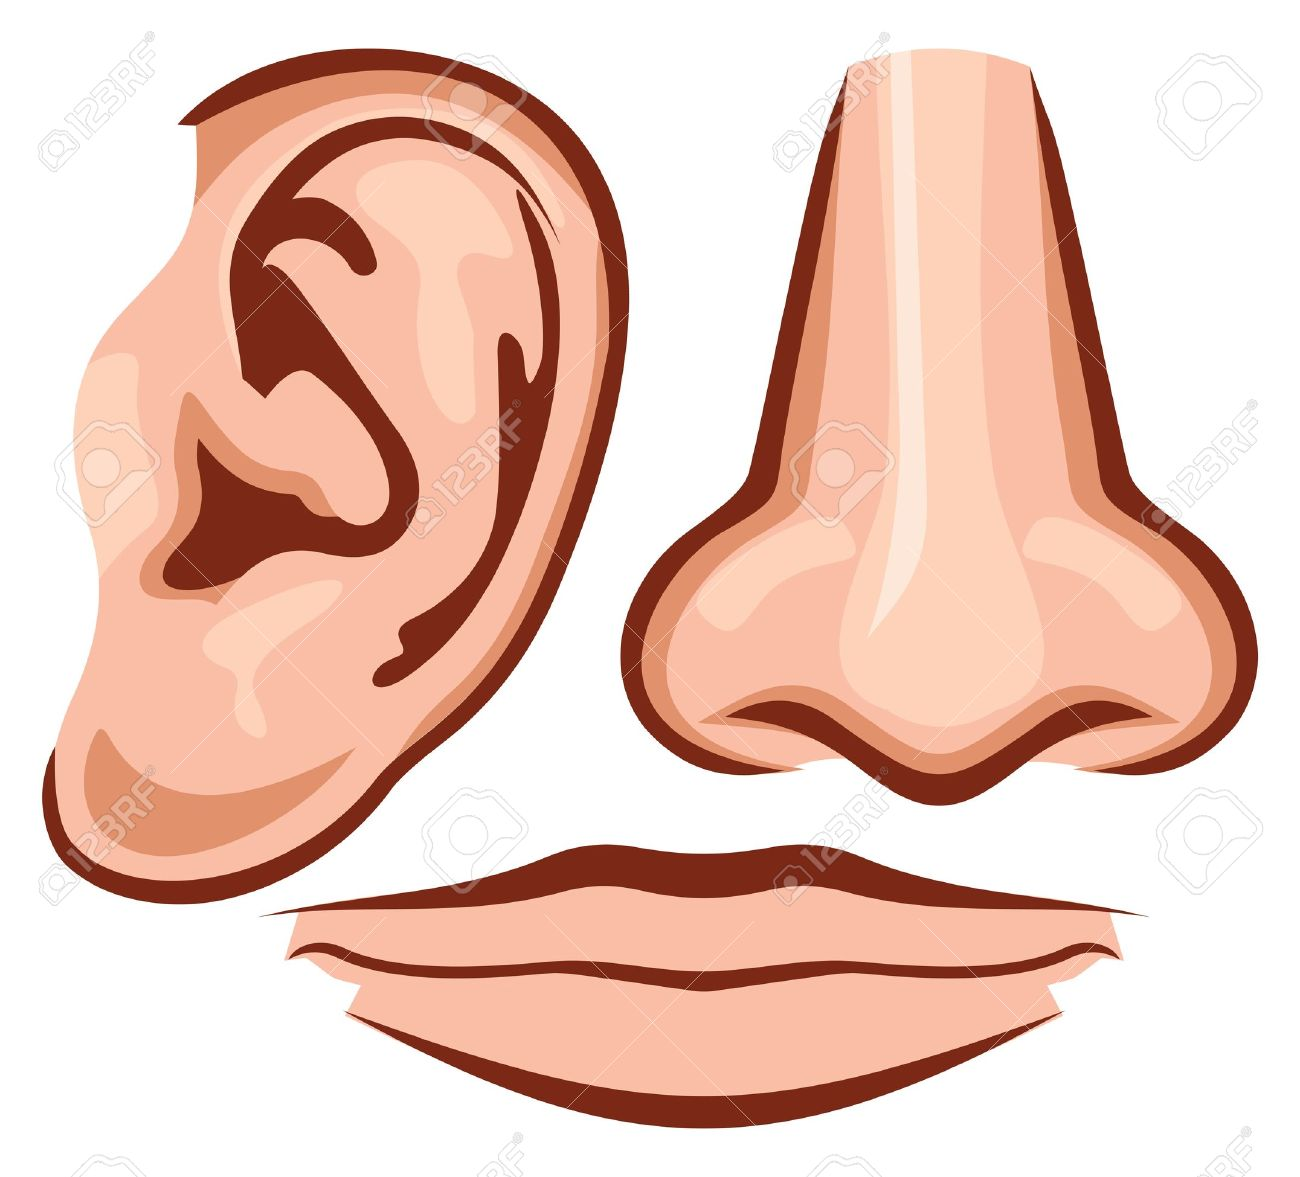 Ears and Nose and Mouth Clip Art.